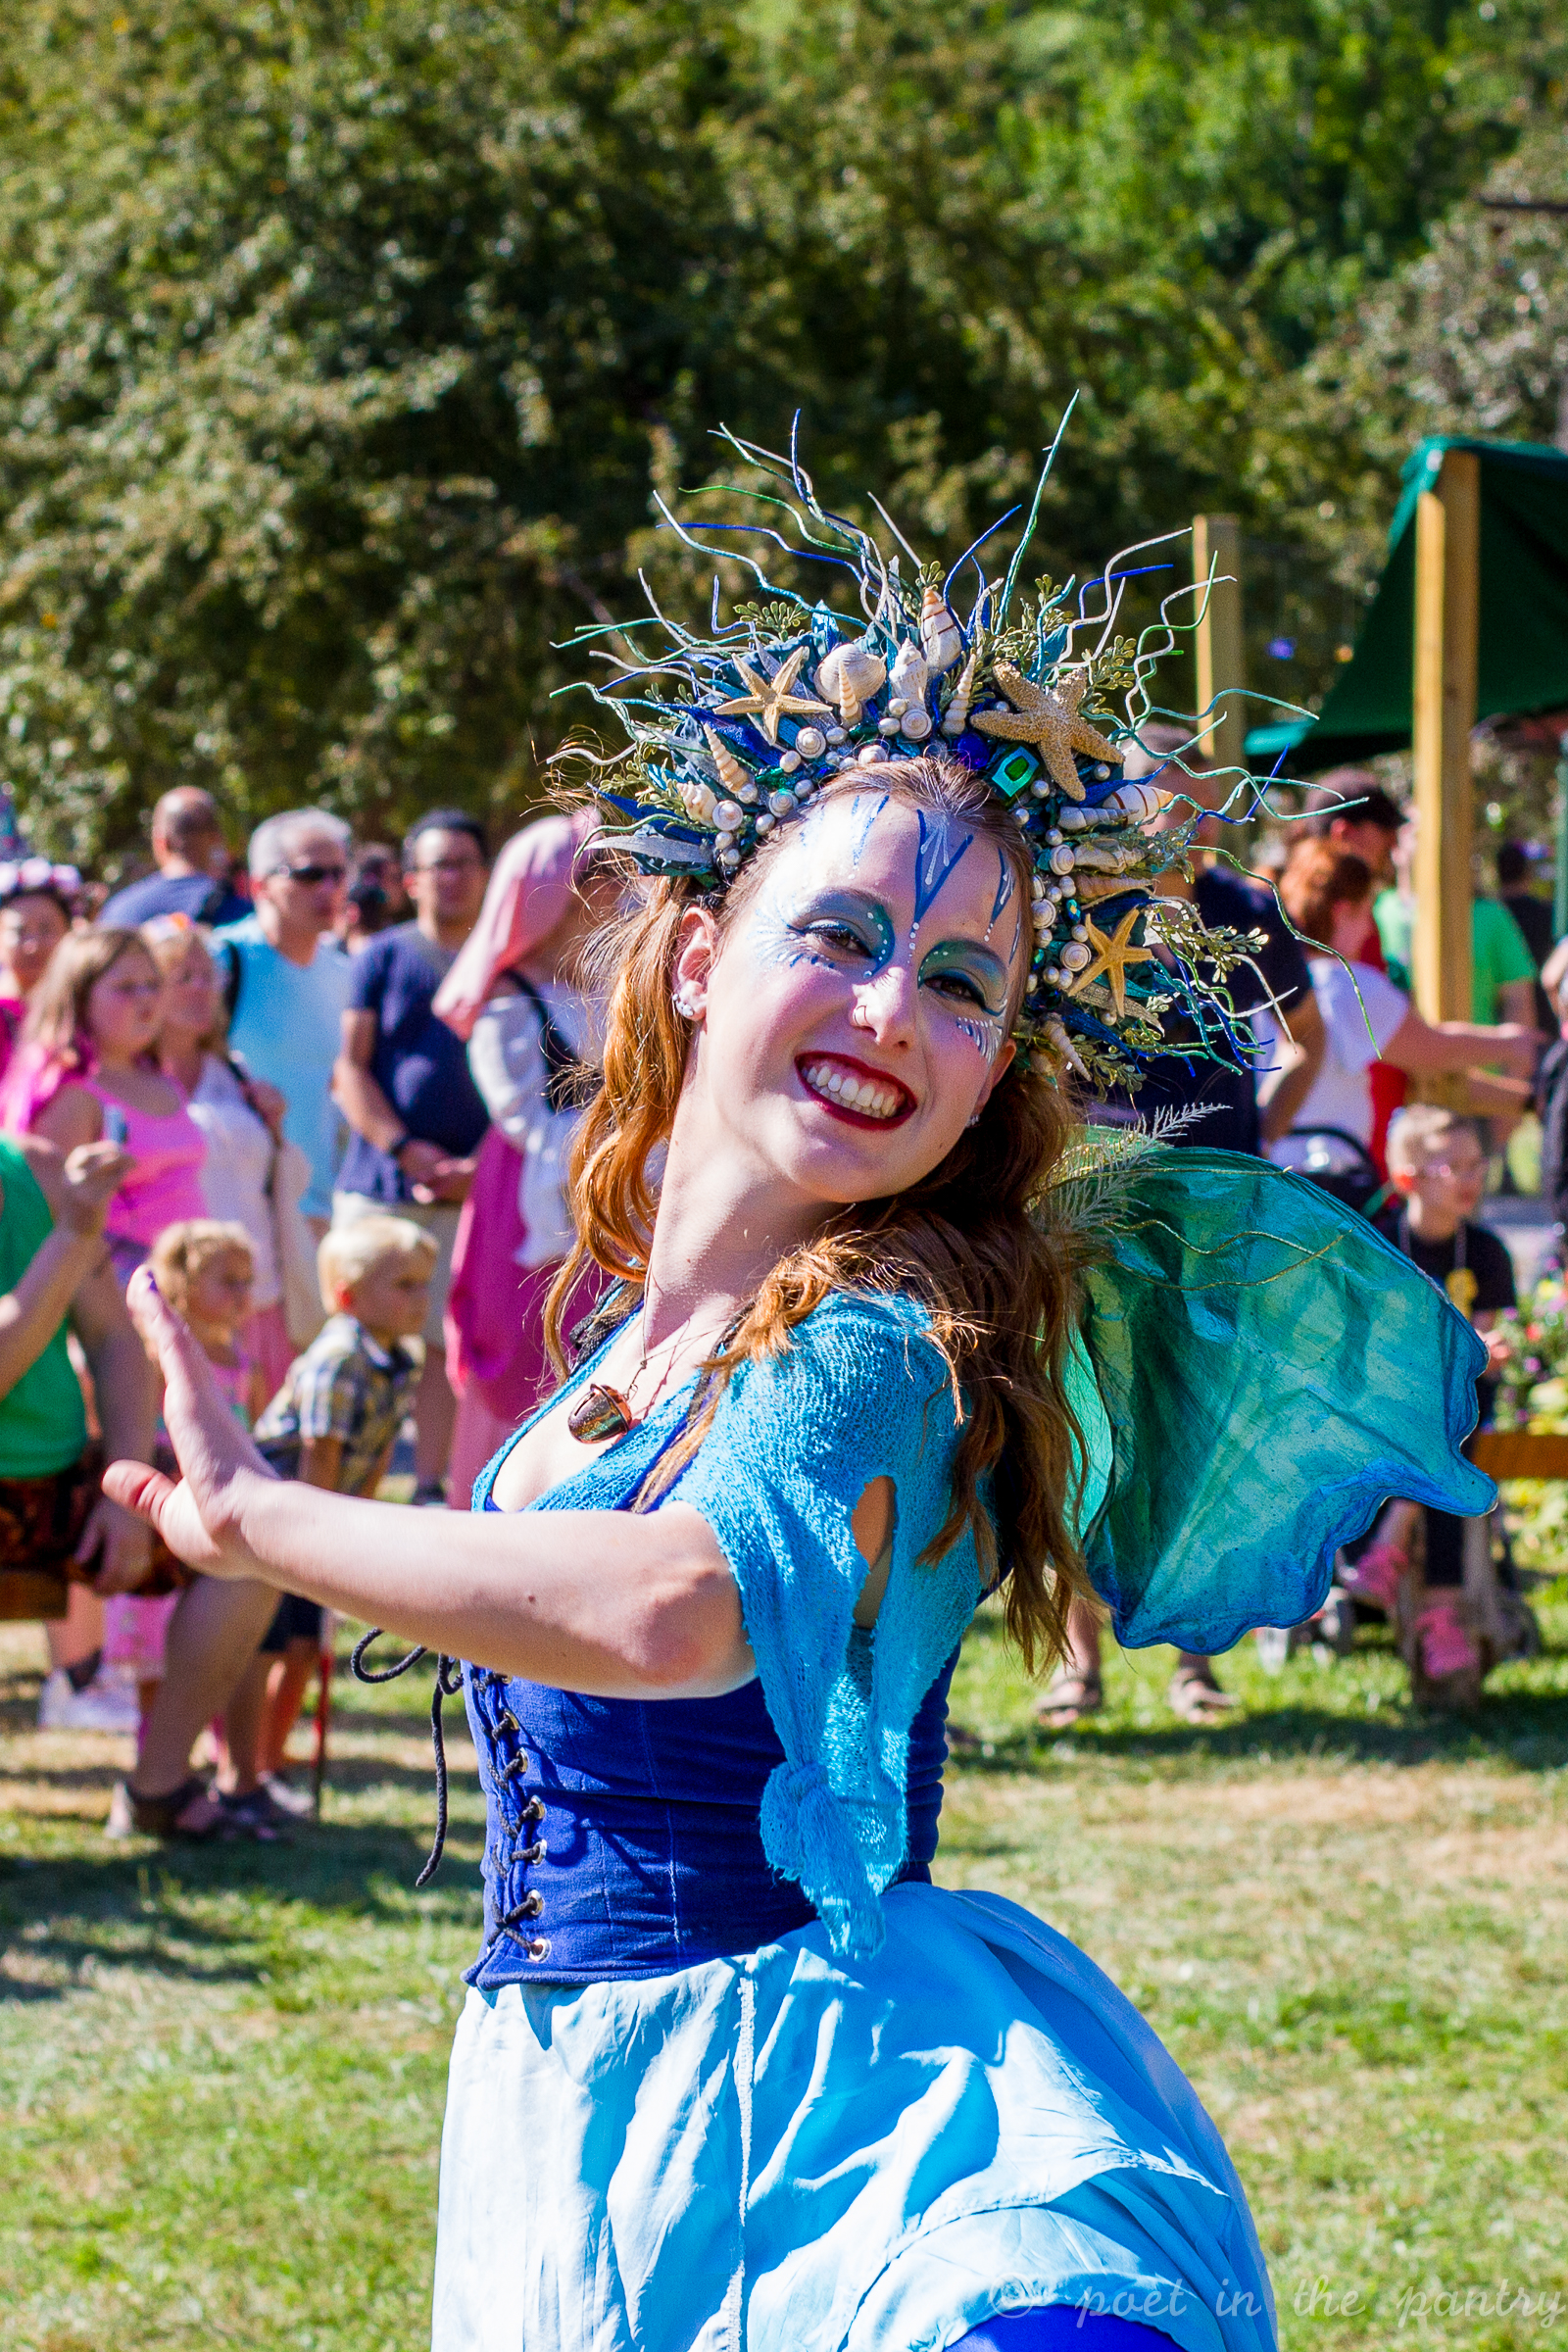 The New York Renaissance Faire is a magical escape